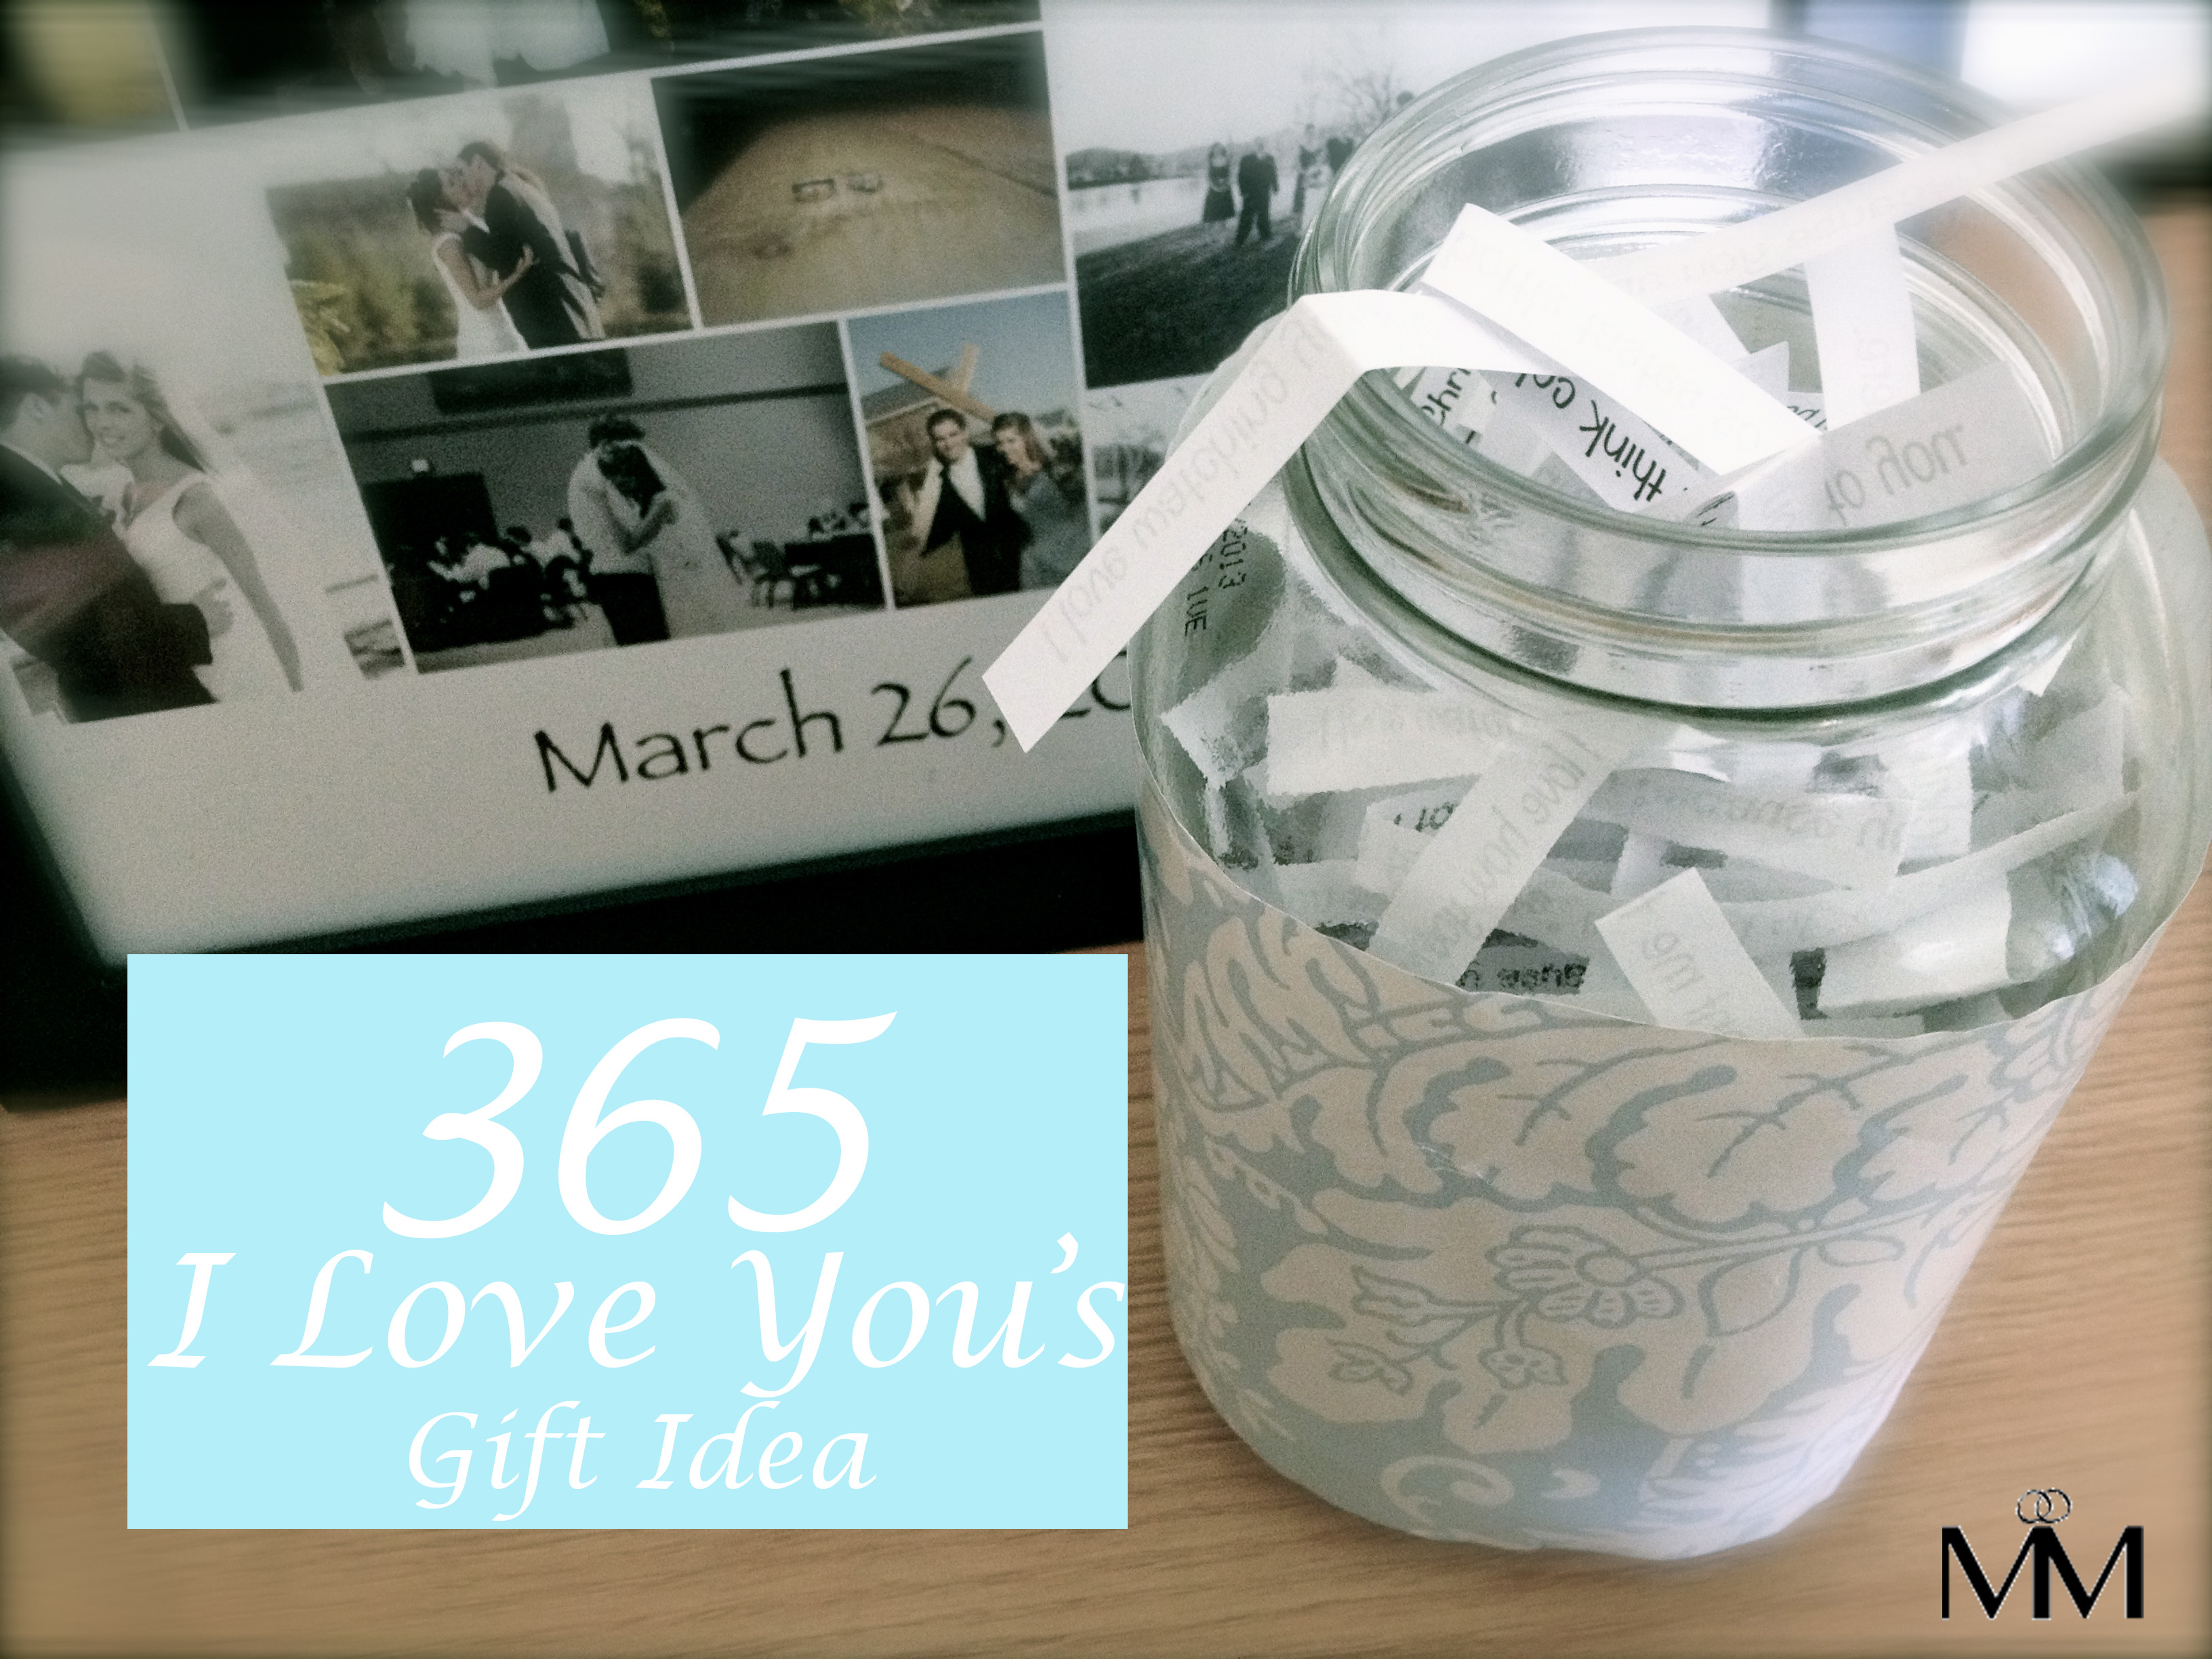 Diy anniversary gifts for boyfriend myideasbedroom